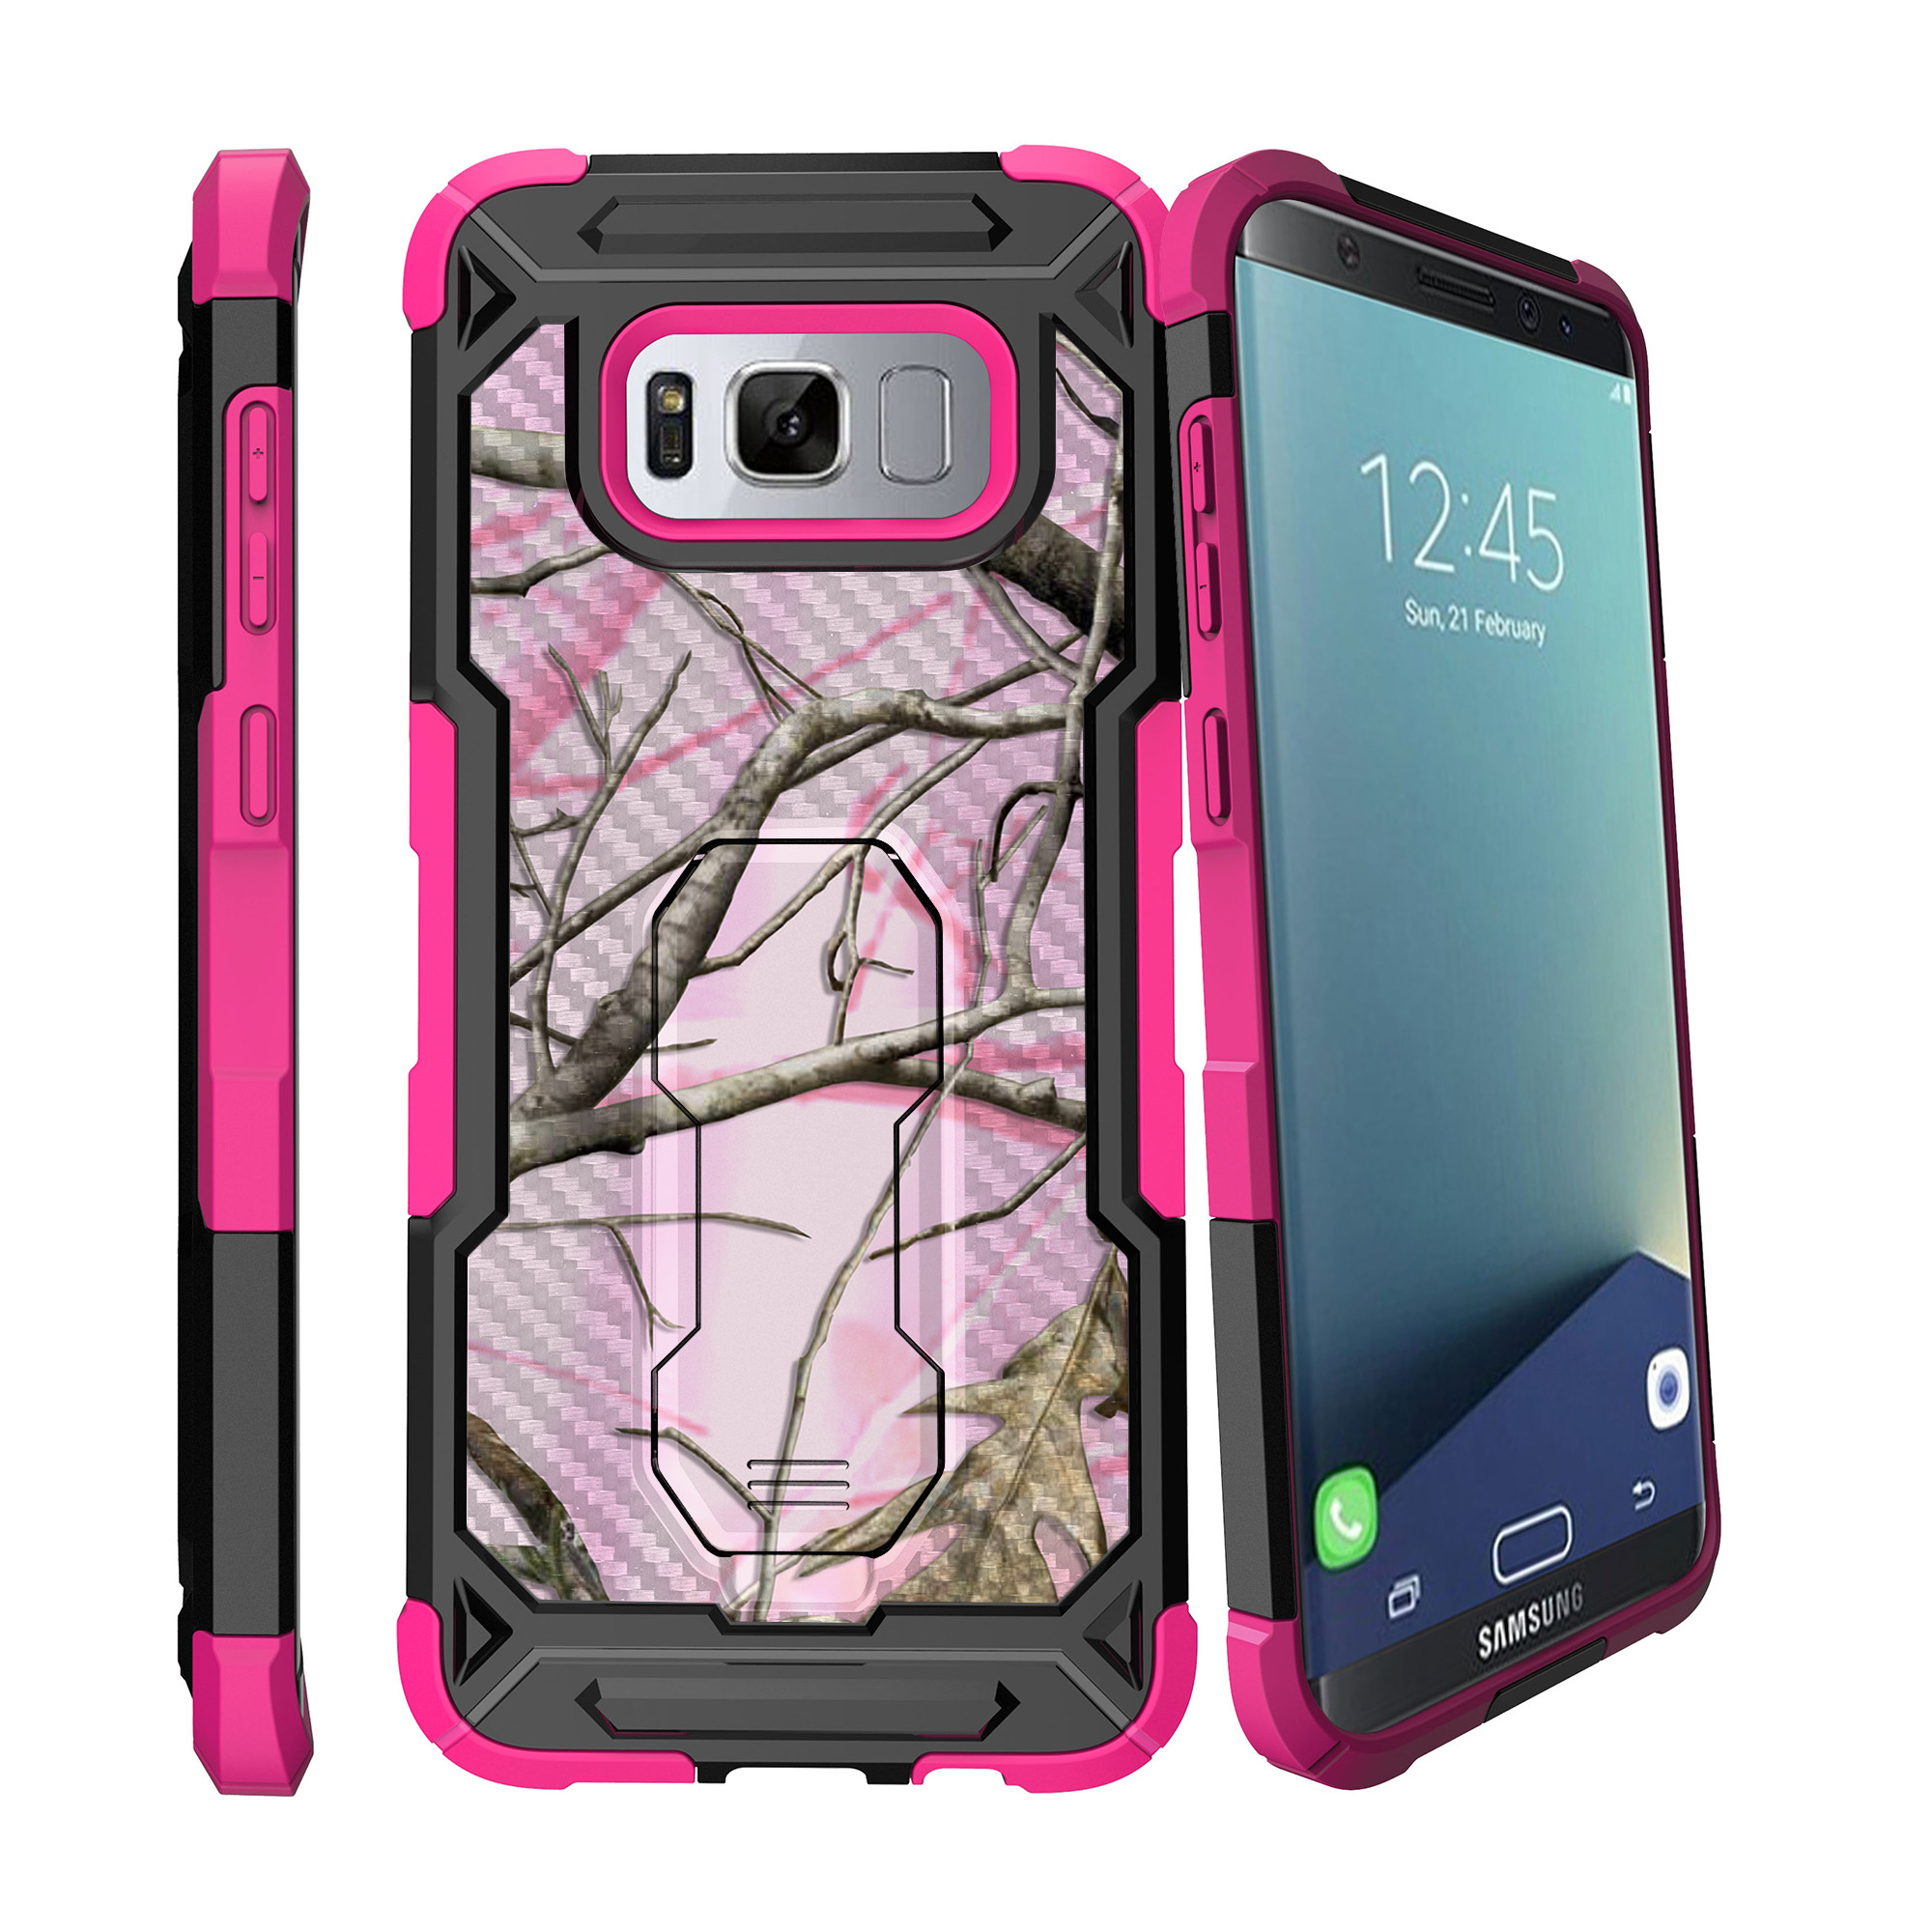 Case for Samsung Galaxy S8 [ UFO Defense Case ][Galaxy S8 SM-G950][Pink Silicone] Carbon Fiber Texture Case with Holster + Stand Camo Collection